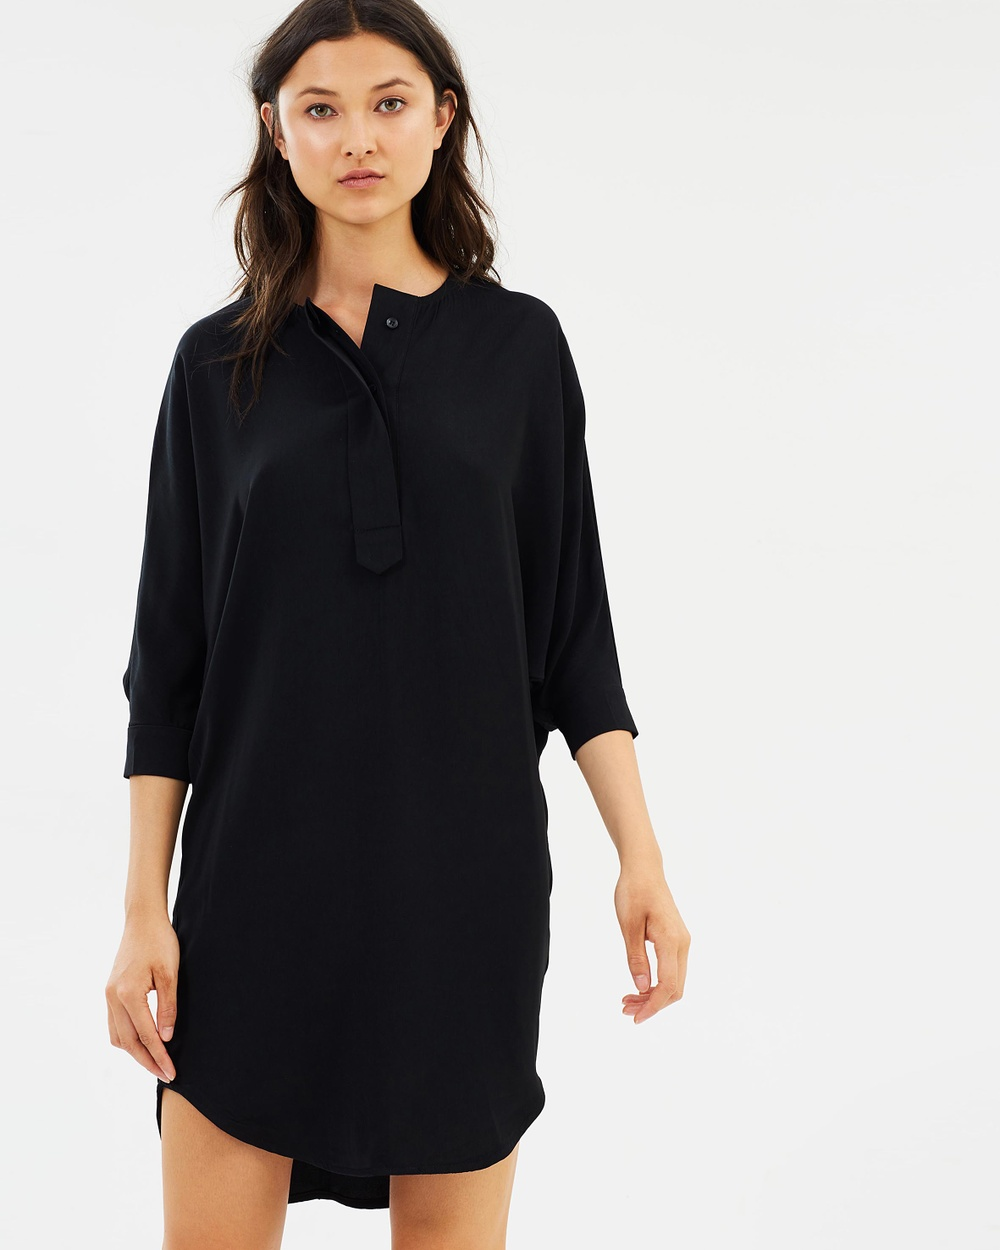 Hello Parry Gisella Relaxed Tunic Dress Dresses Black Gisella Relaxed Tunic Dress